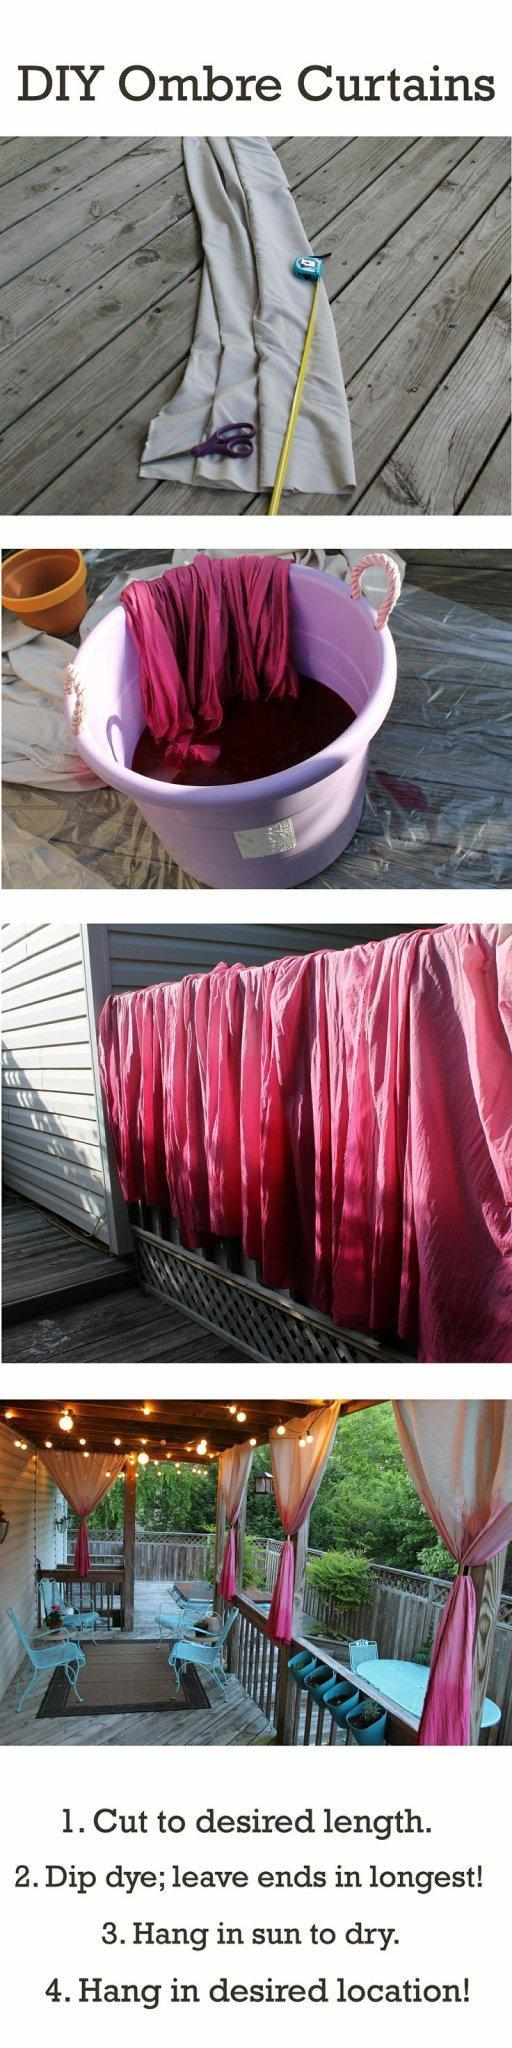 DIY ombre surtains - with fabric and paint